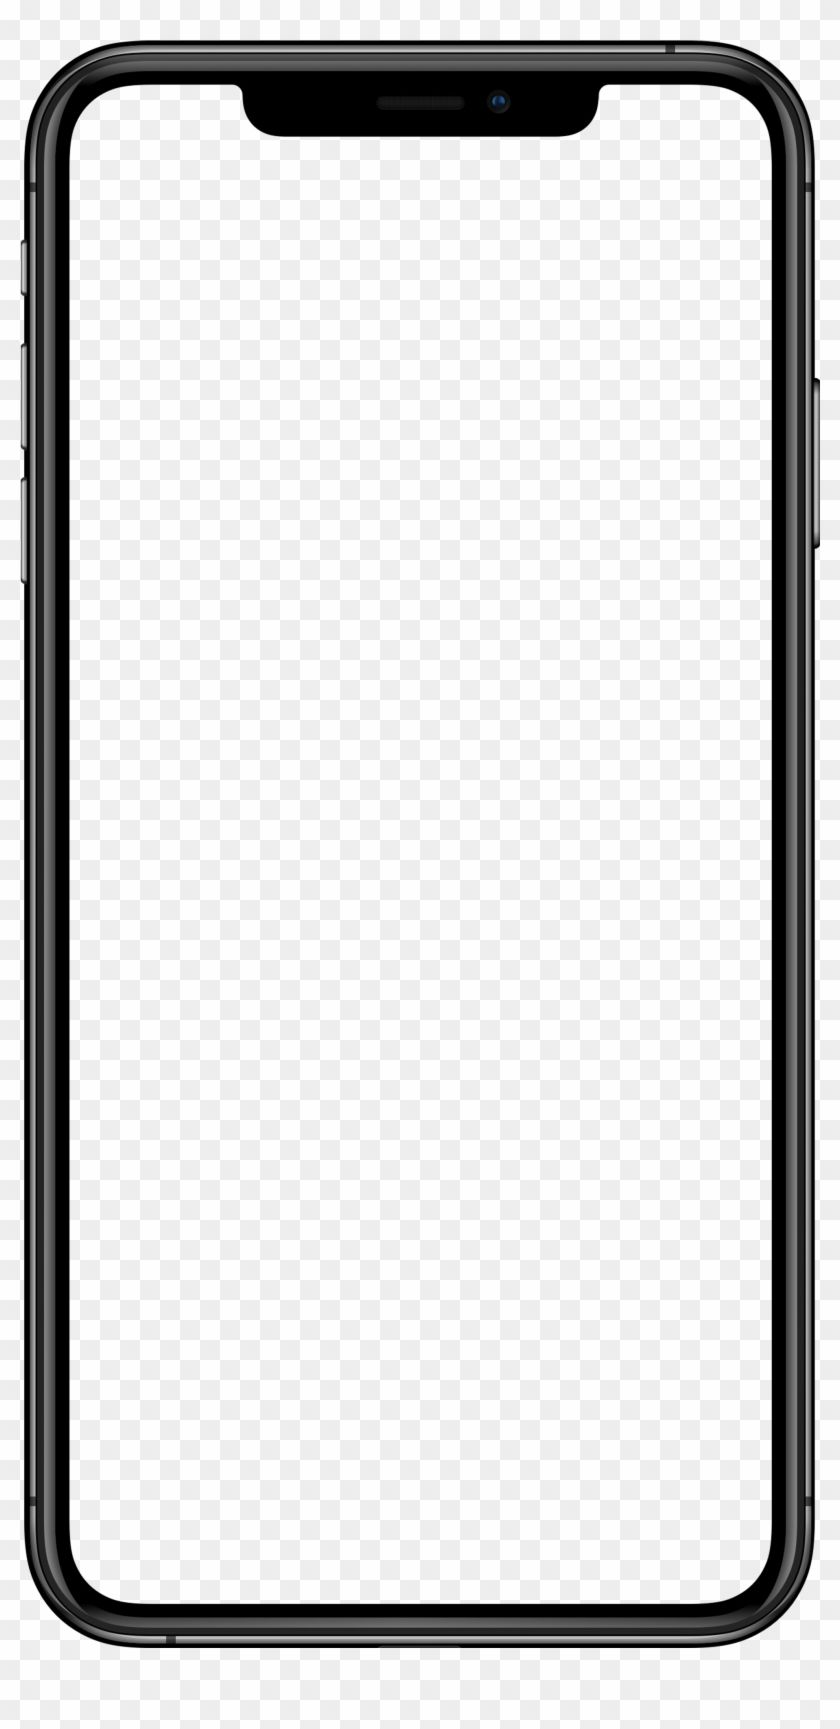 Find Hd Download Iphone Xs Transparent Background Hd Png Download To Search And Download Image Overlay Overlays Transparent Background Overlays Transparent